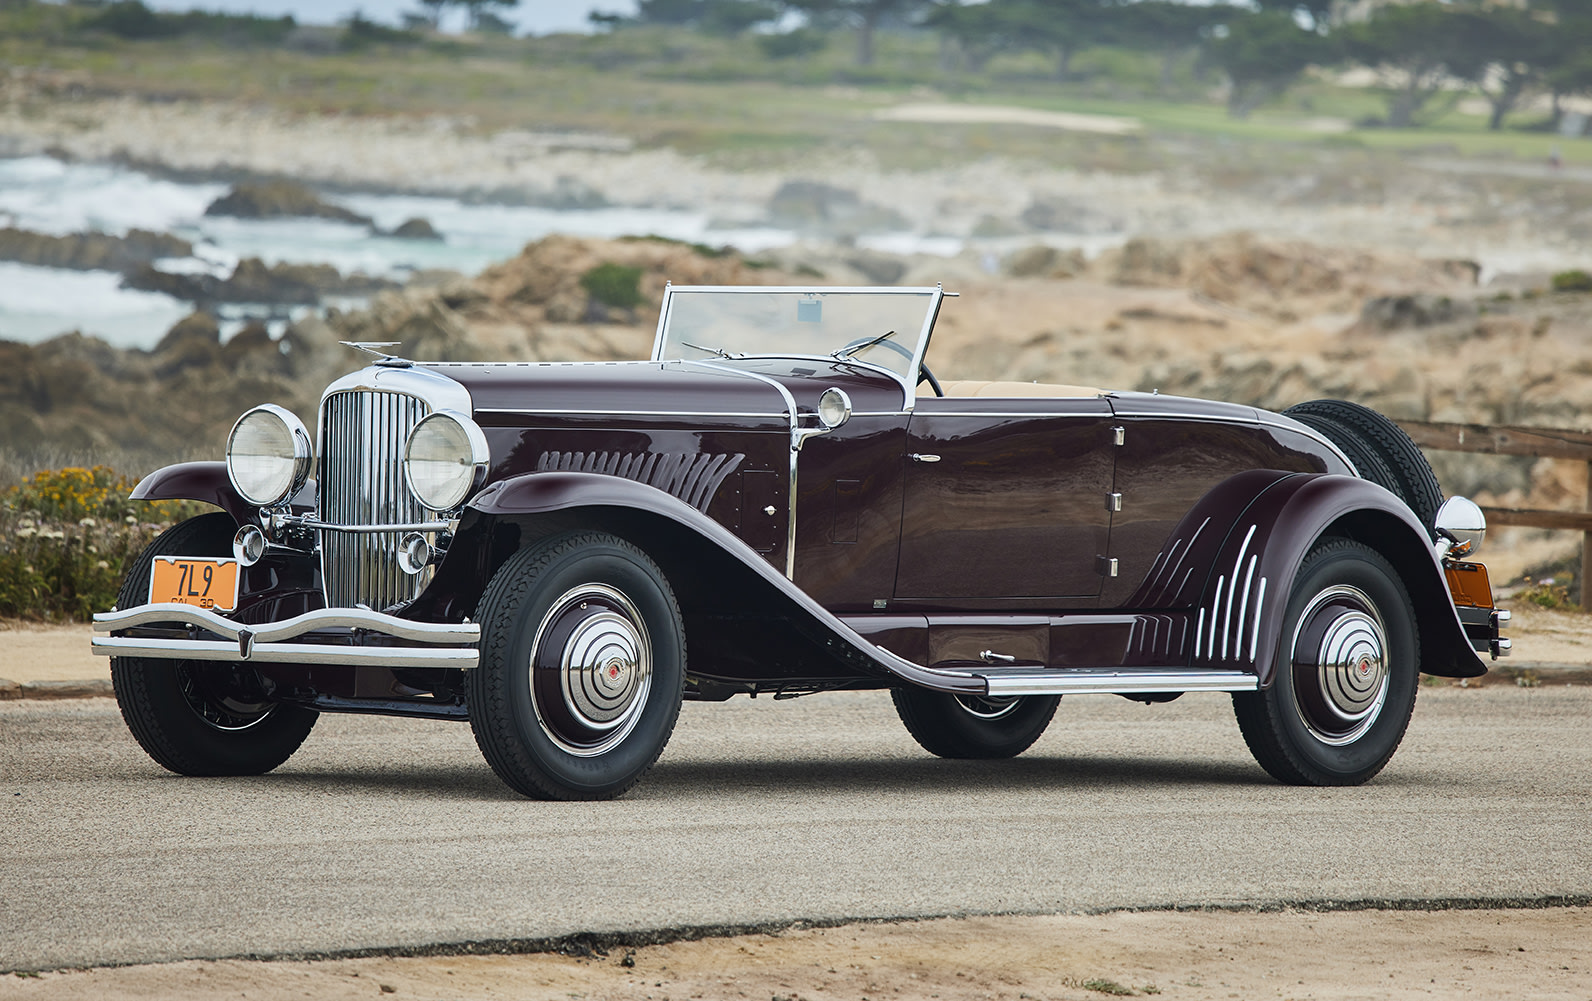 1930 Duesenberg Model J Disappearing-Top Convertible Coupe (1)